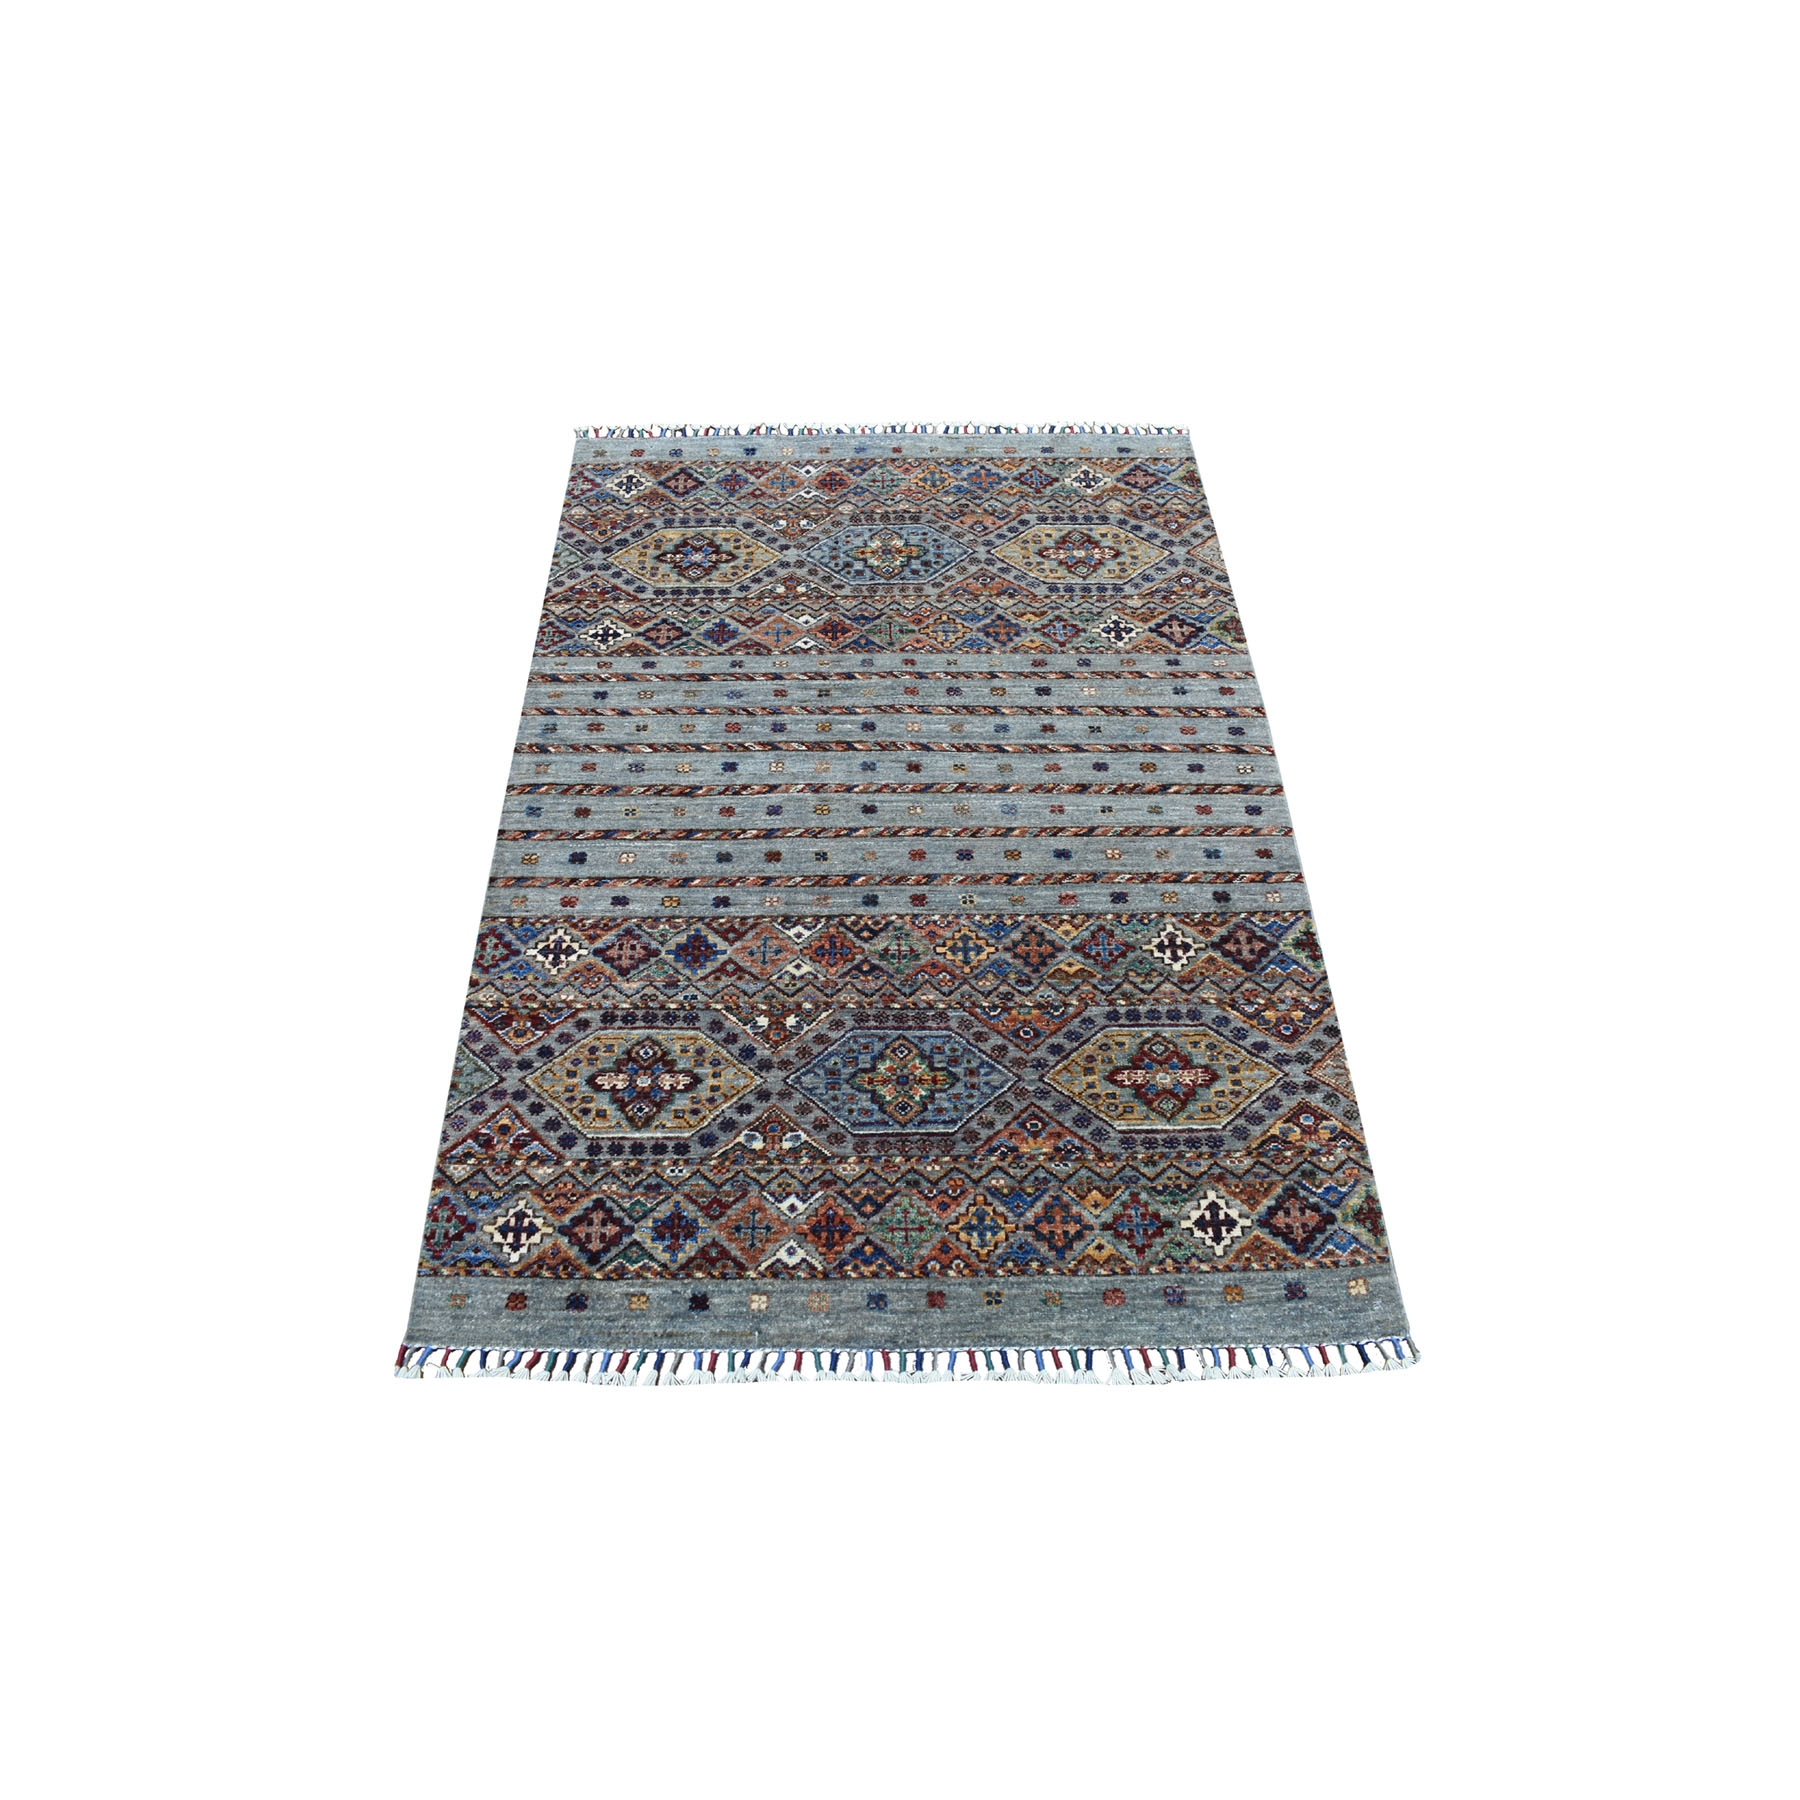 "3'5""x5' Hand Knotted Gray Super Kazak Khorjin Design With Colorful Tassles Organic Wool Oriental Rug"